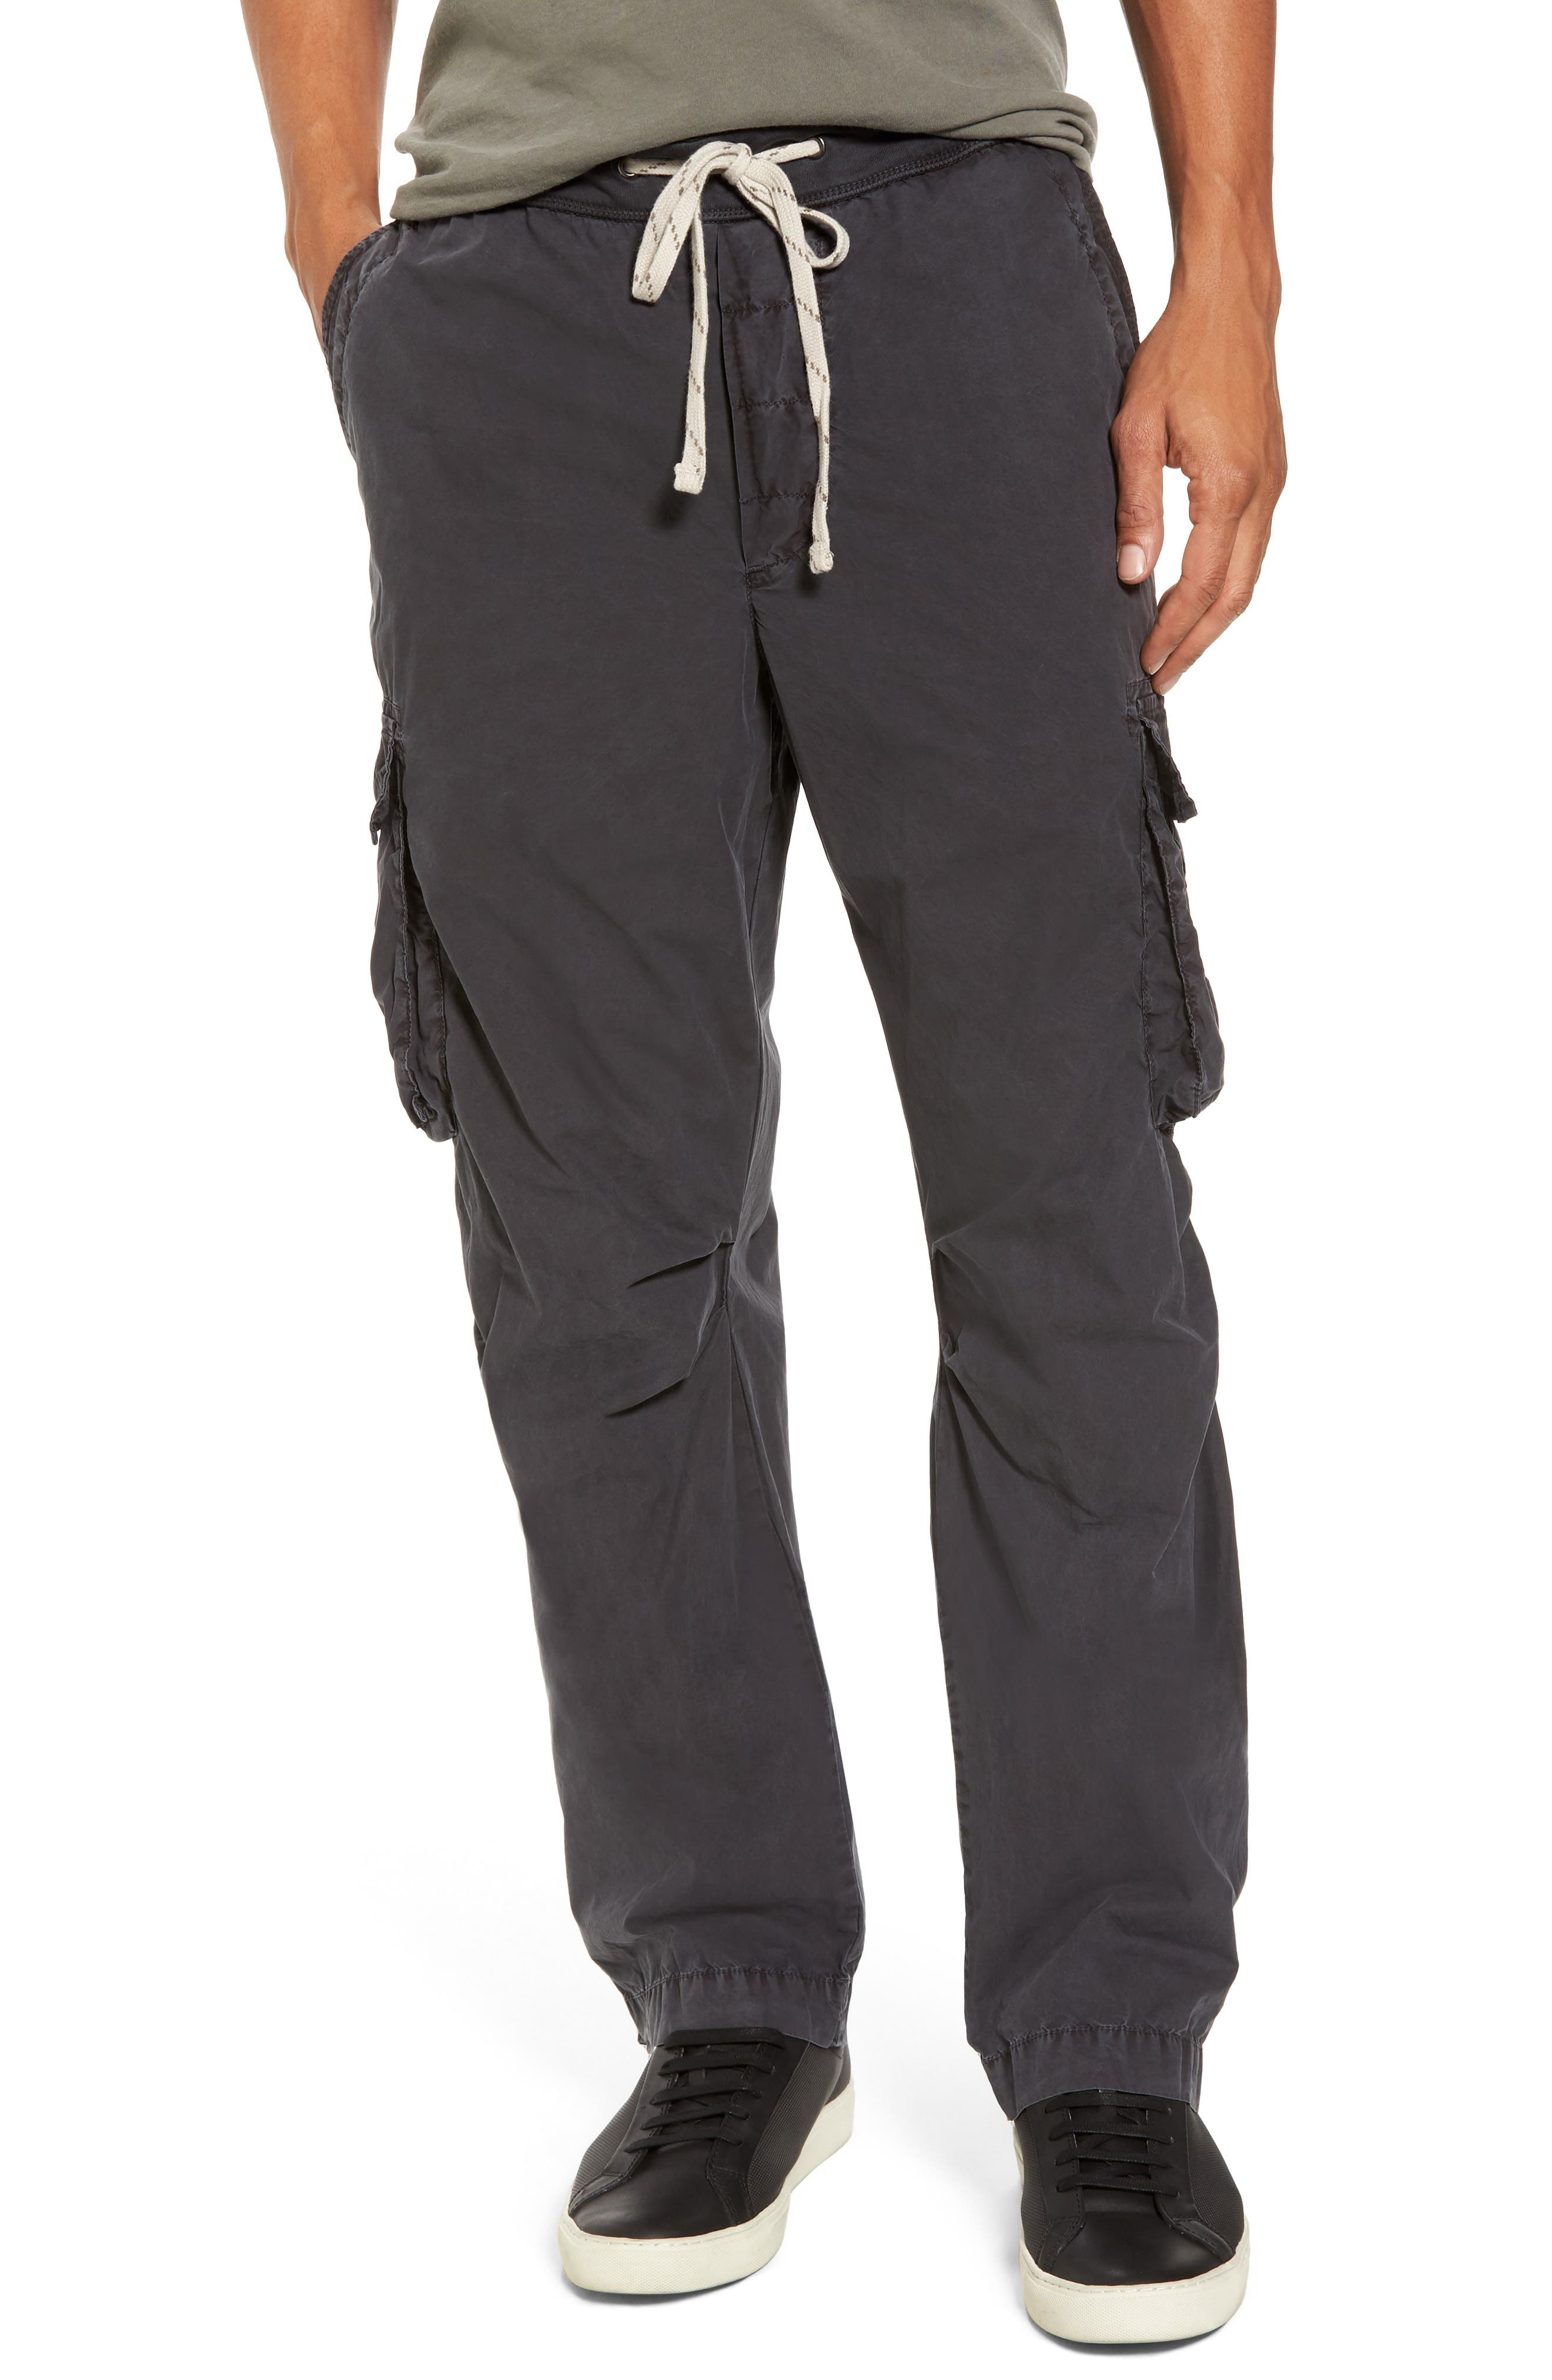 Alternate Image 1 Selected - James Perse Contrast Waist Cargo Pants